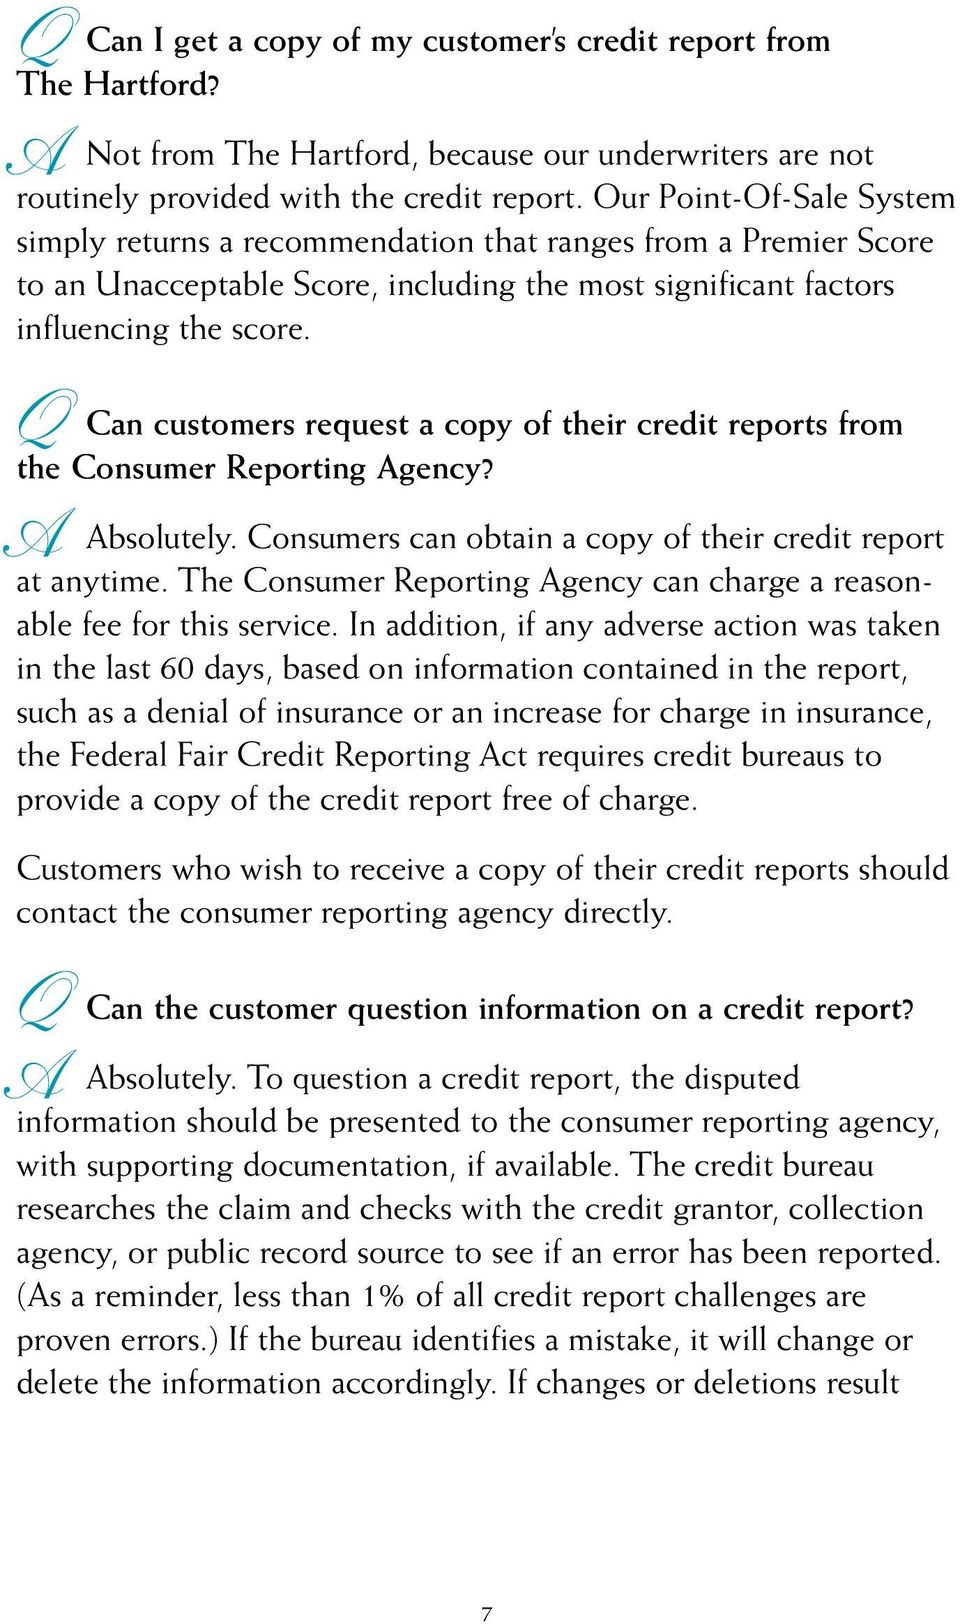 Can customers request a copy of their credit reports from the Consumer Reporting gency? bsolutely. Consumers can obtain a copy of their credit report at anytime.